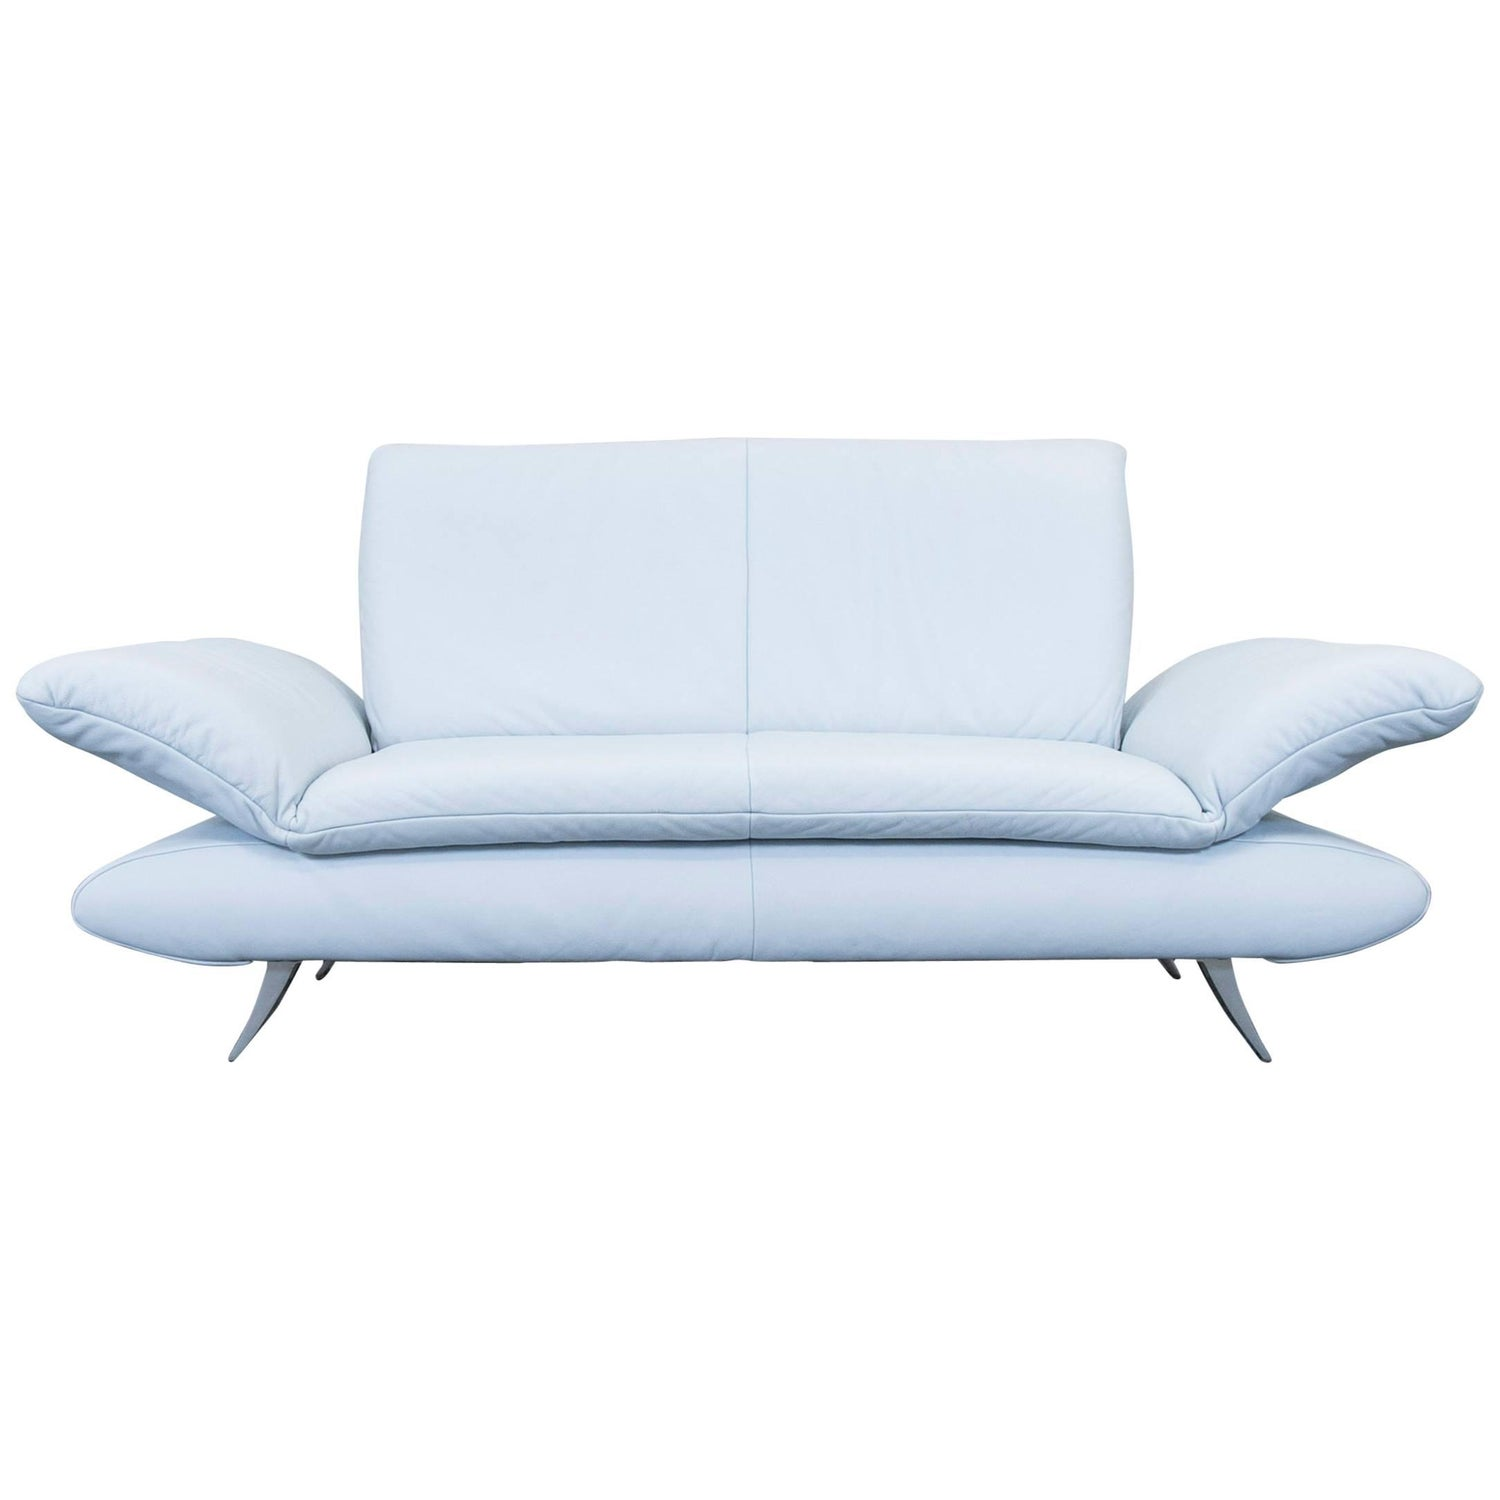 Koinor Rossini Designer Leather Sofa Ice Blue Two Seat Couch